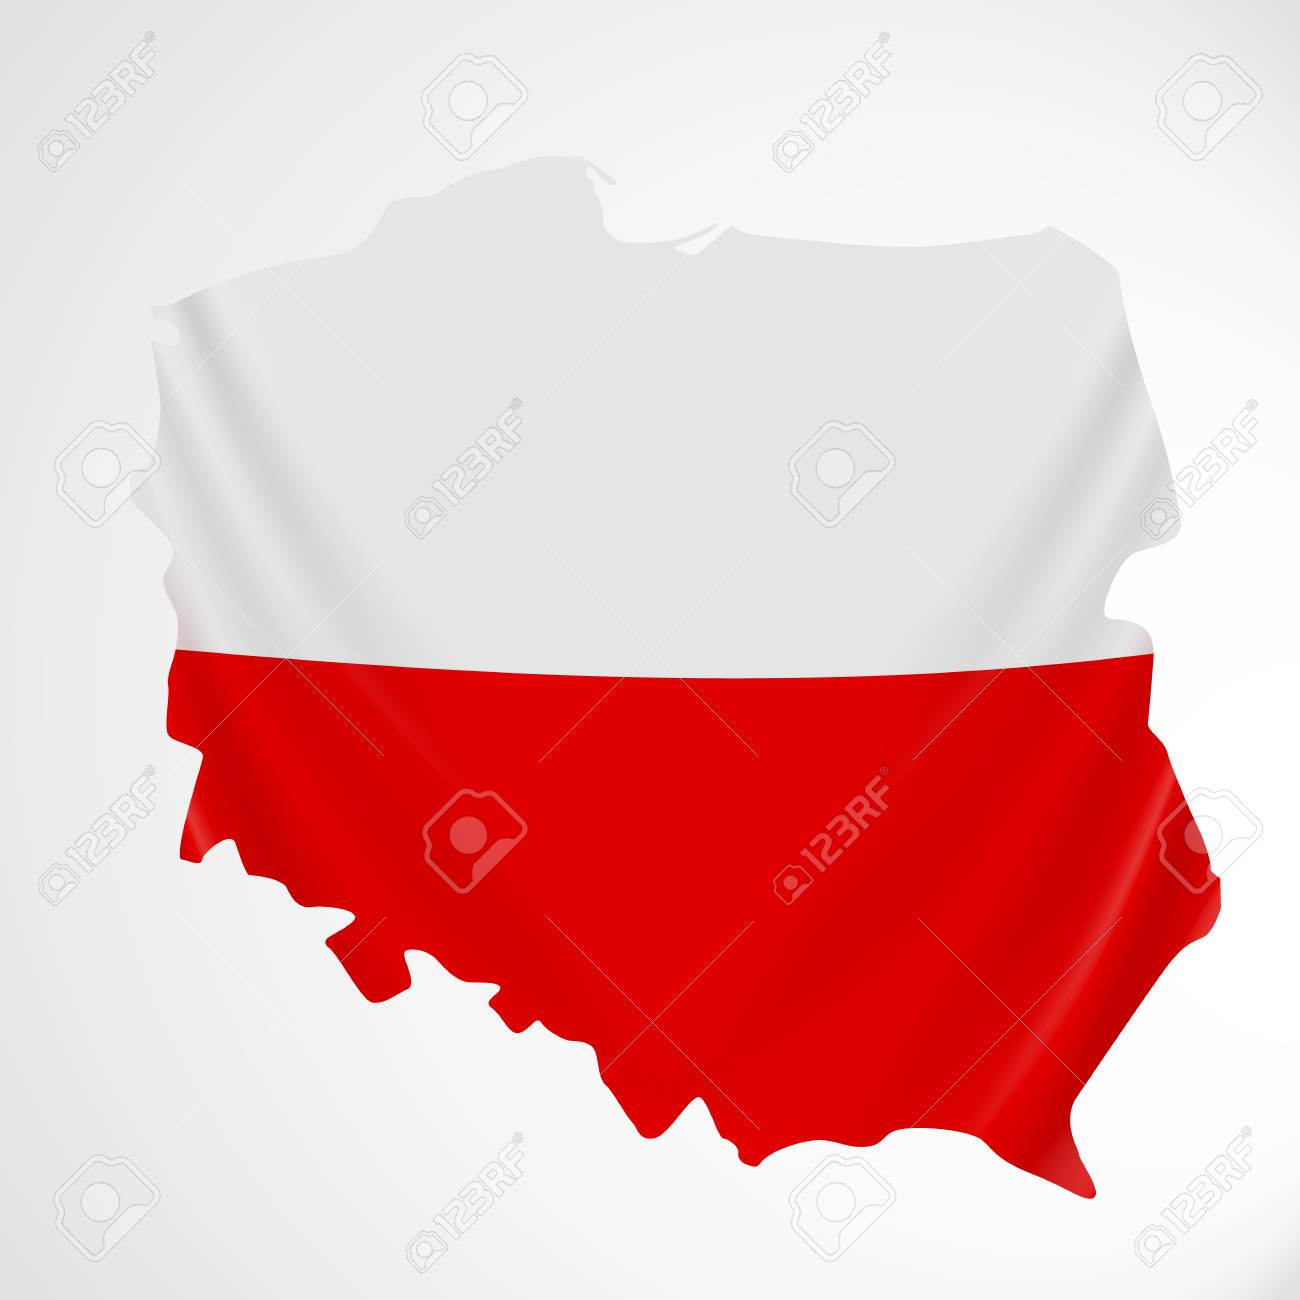 poland flag in form of map republic of poland polish national